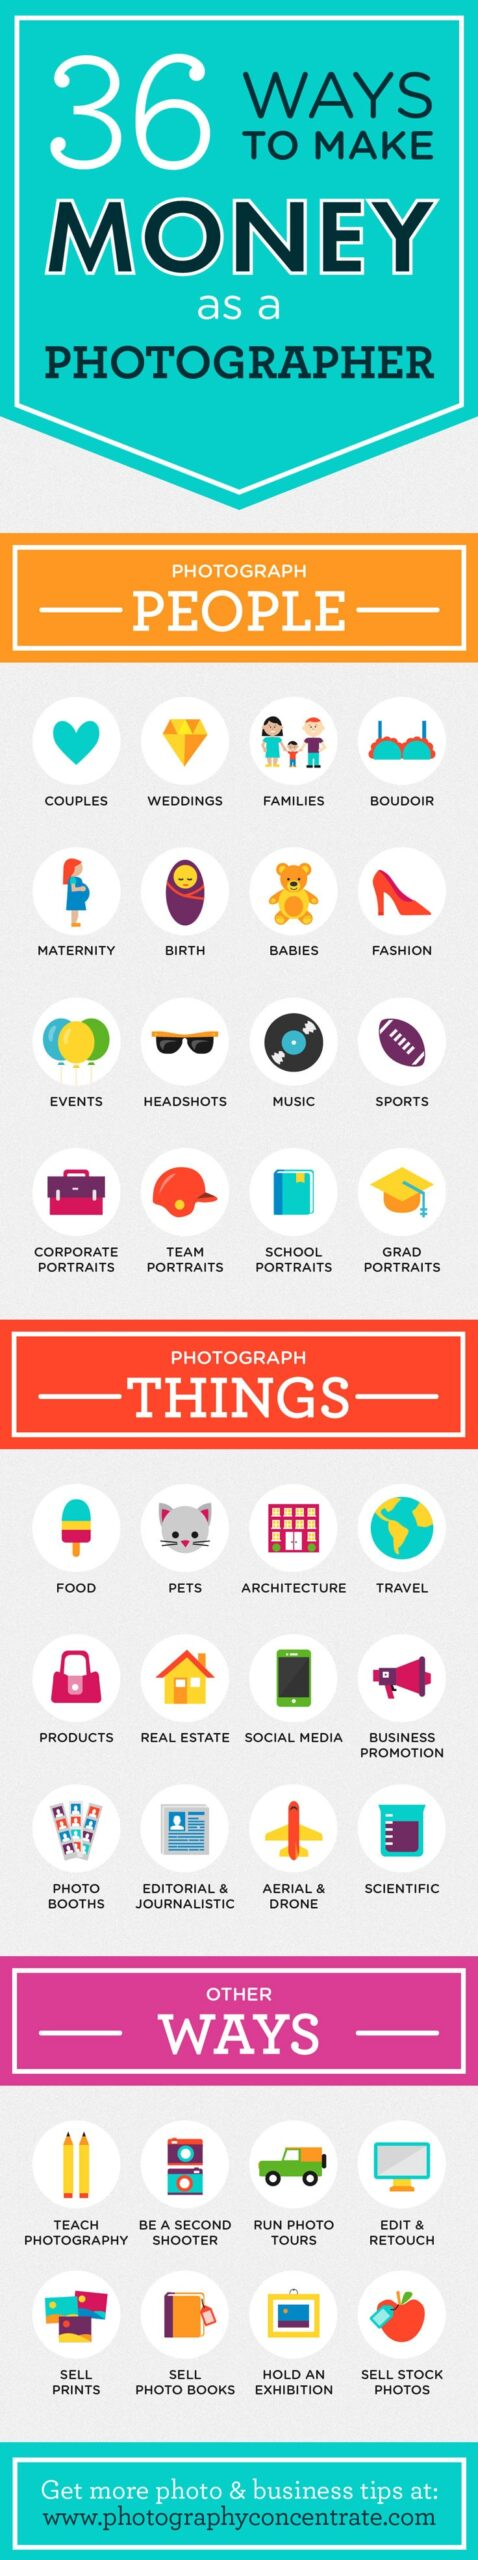 Infographic-31-ways-to-make-money-as-a-photographer